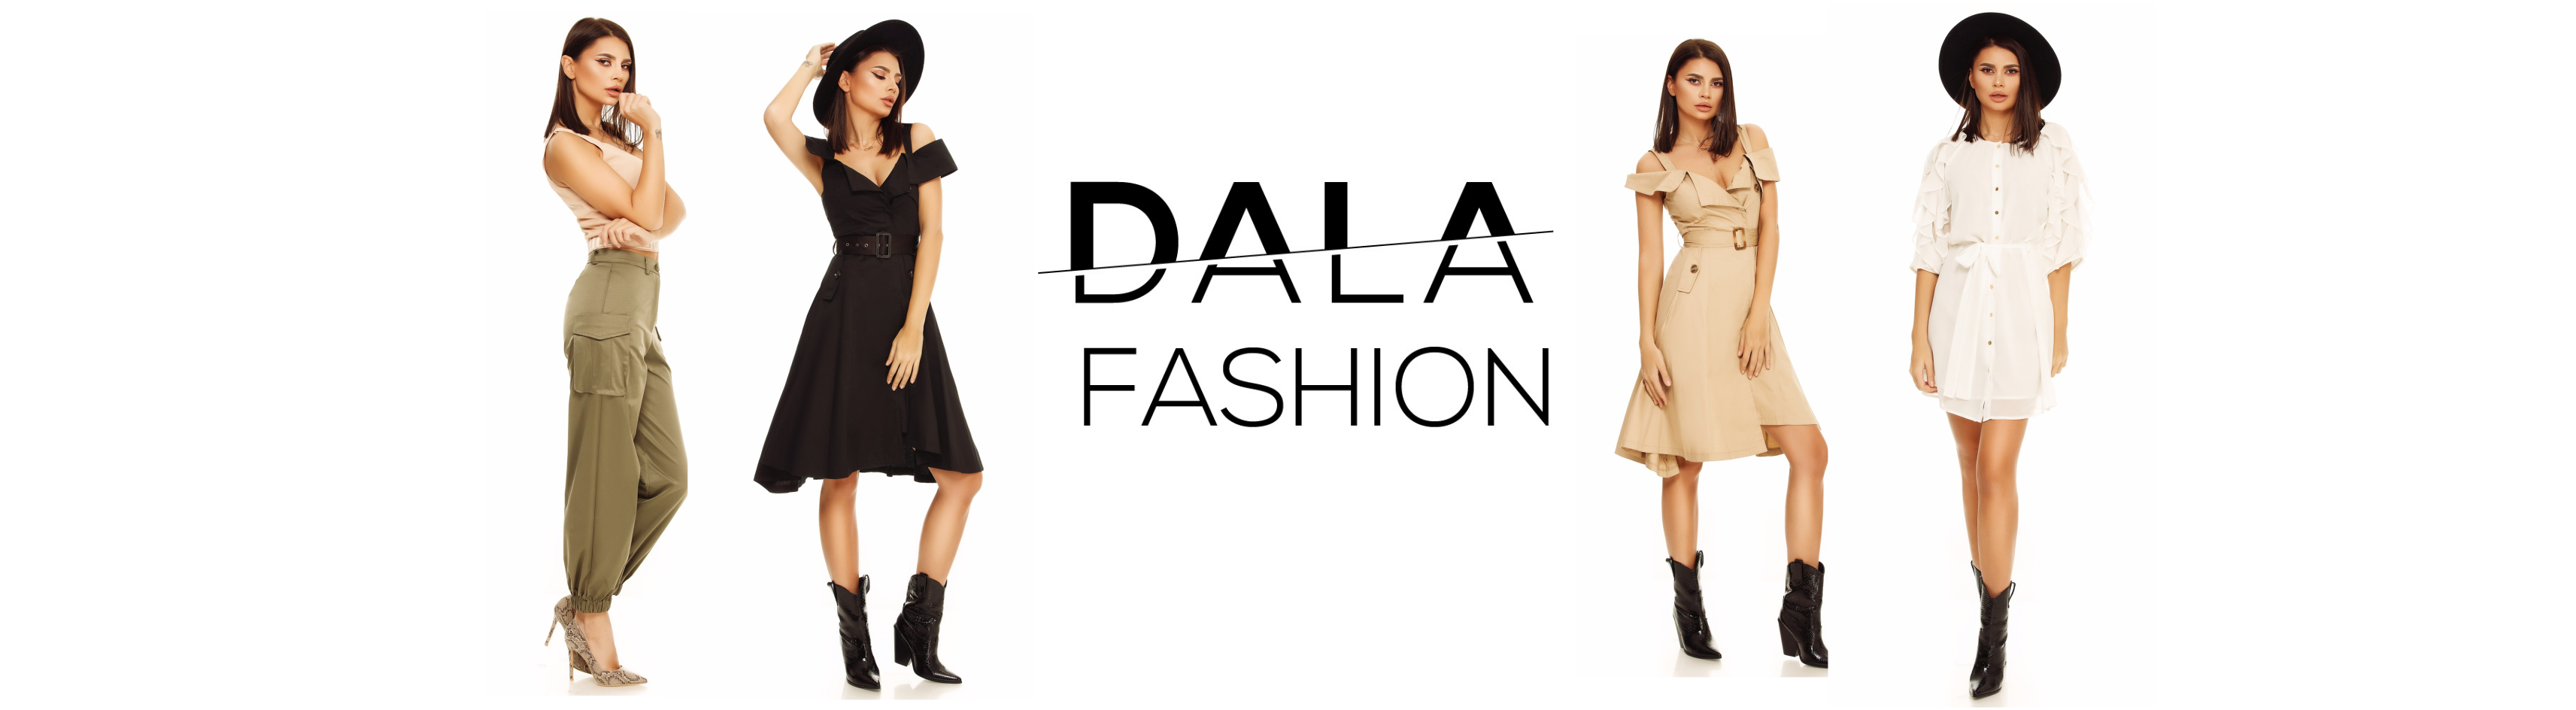 Dala Fashion